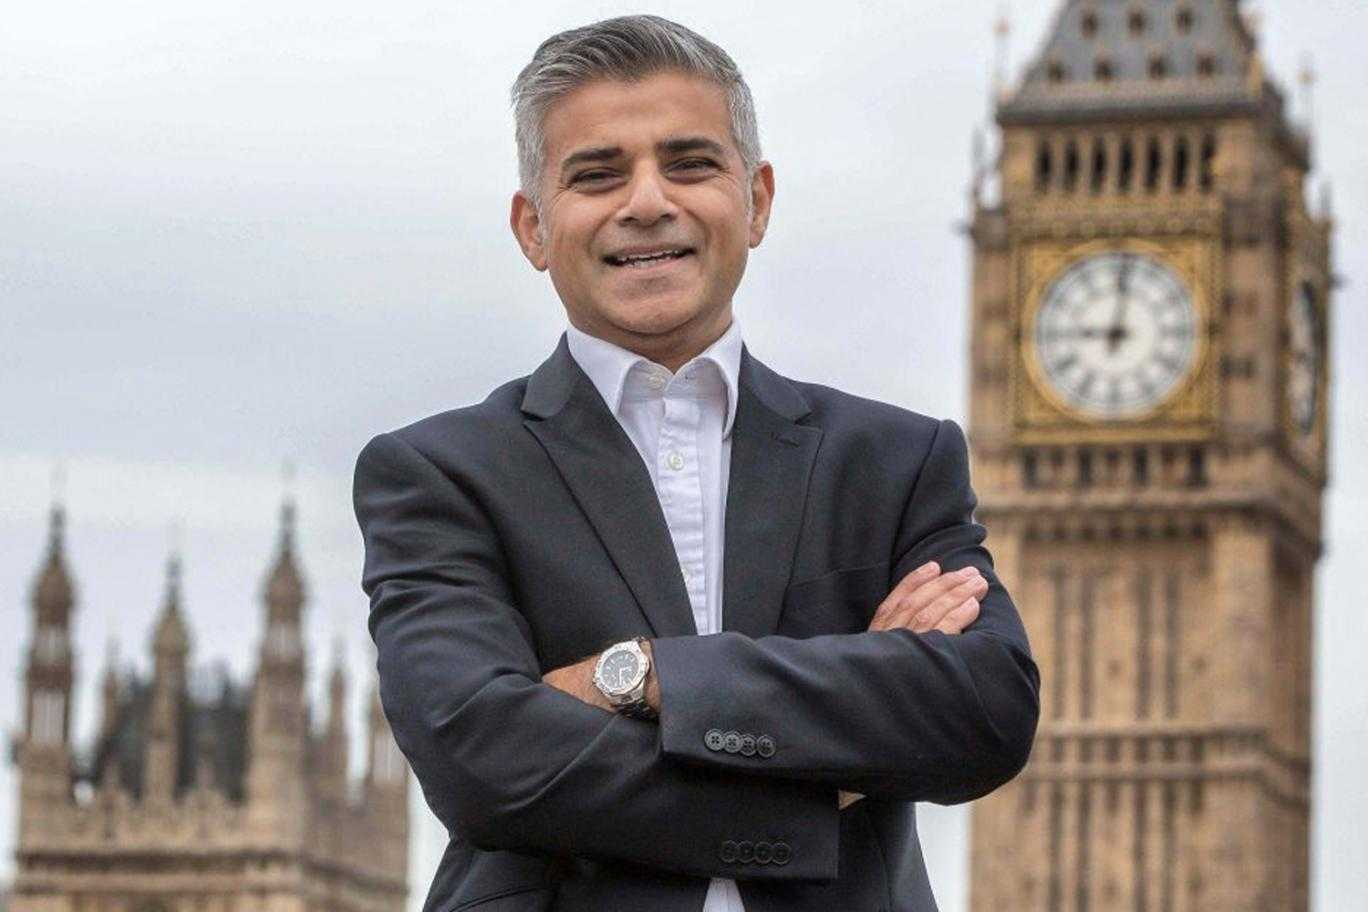 Trump Lashes Out At London's First Muslim Mayor, Tells Him To Take An IQ Test | Trump